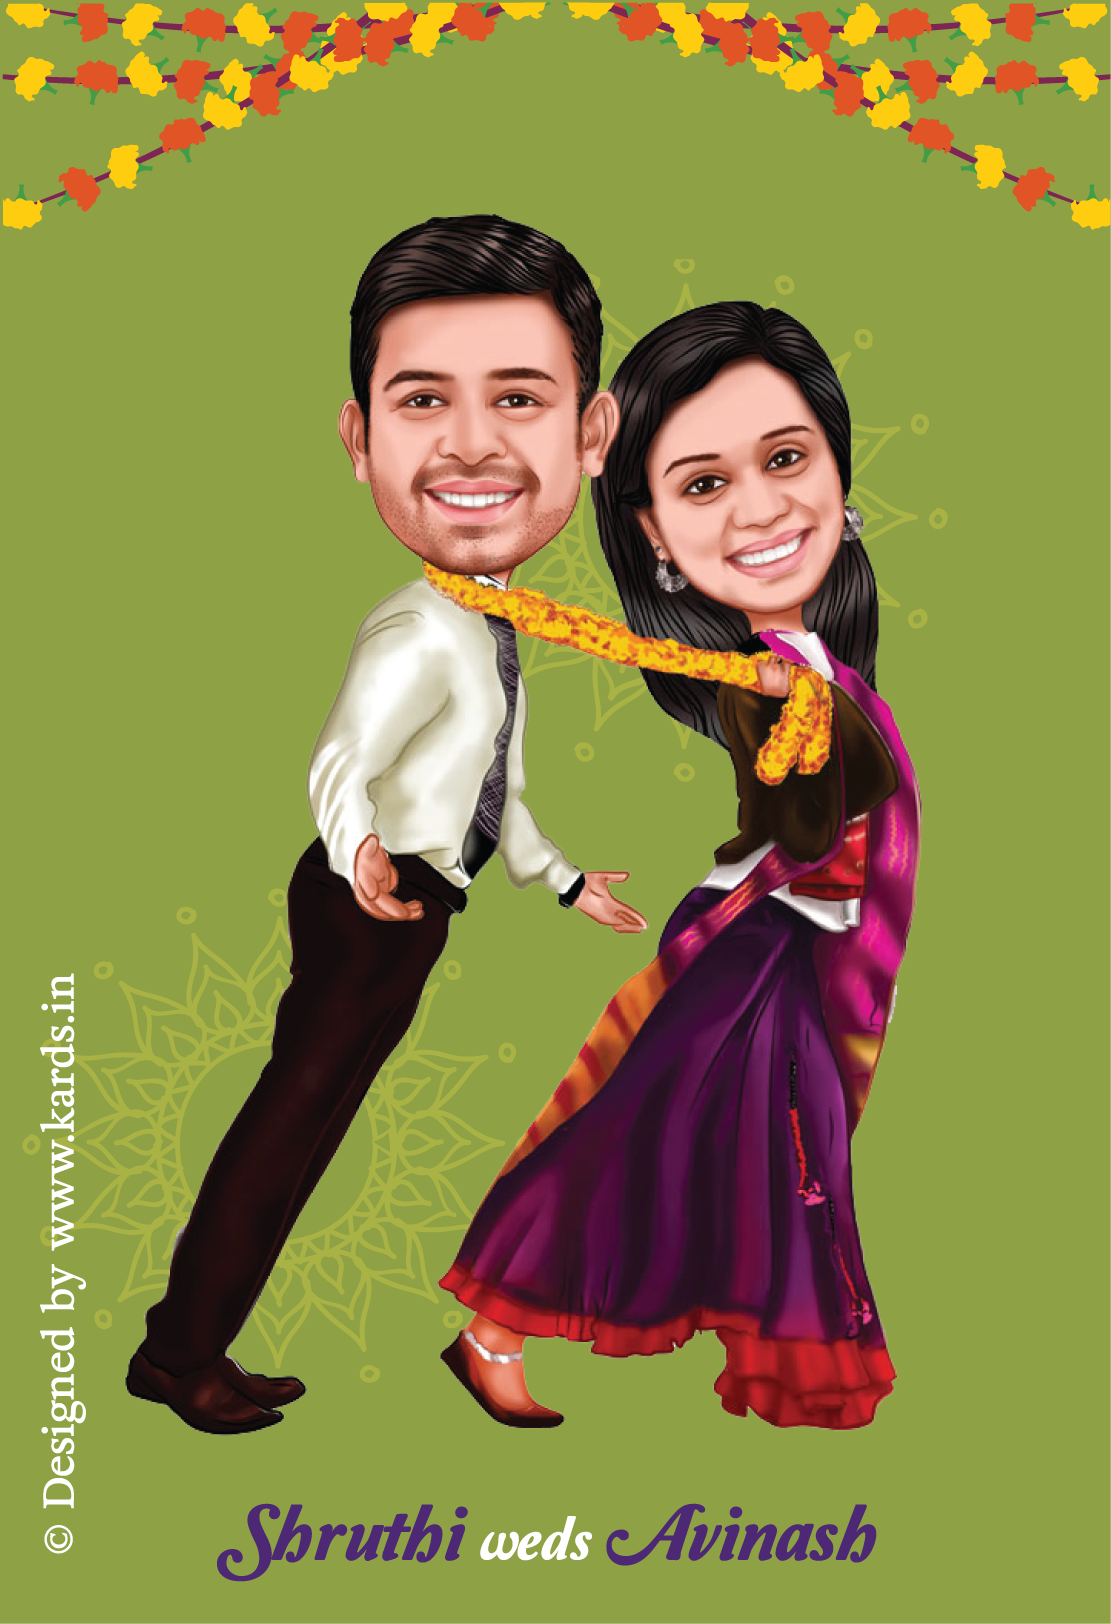 A Tanu Weds Manu Style Caricature Invitation For A Funny Couple Funny Wedding Invitations Caricature Wedding Invitations Funny Wedding Cards